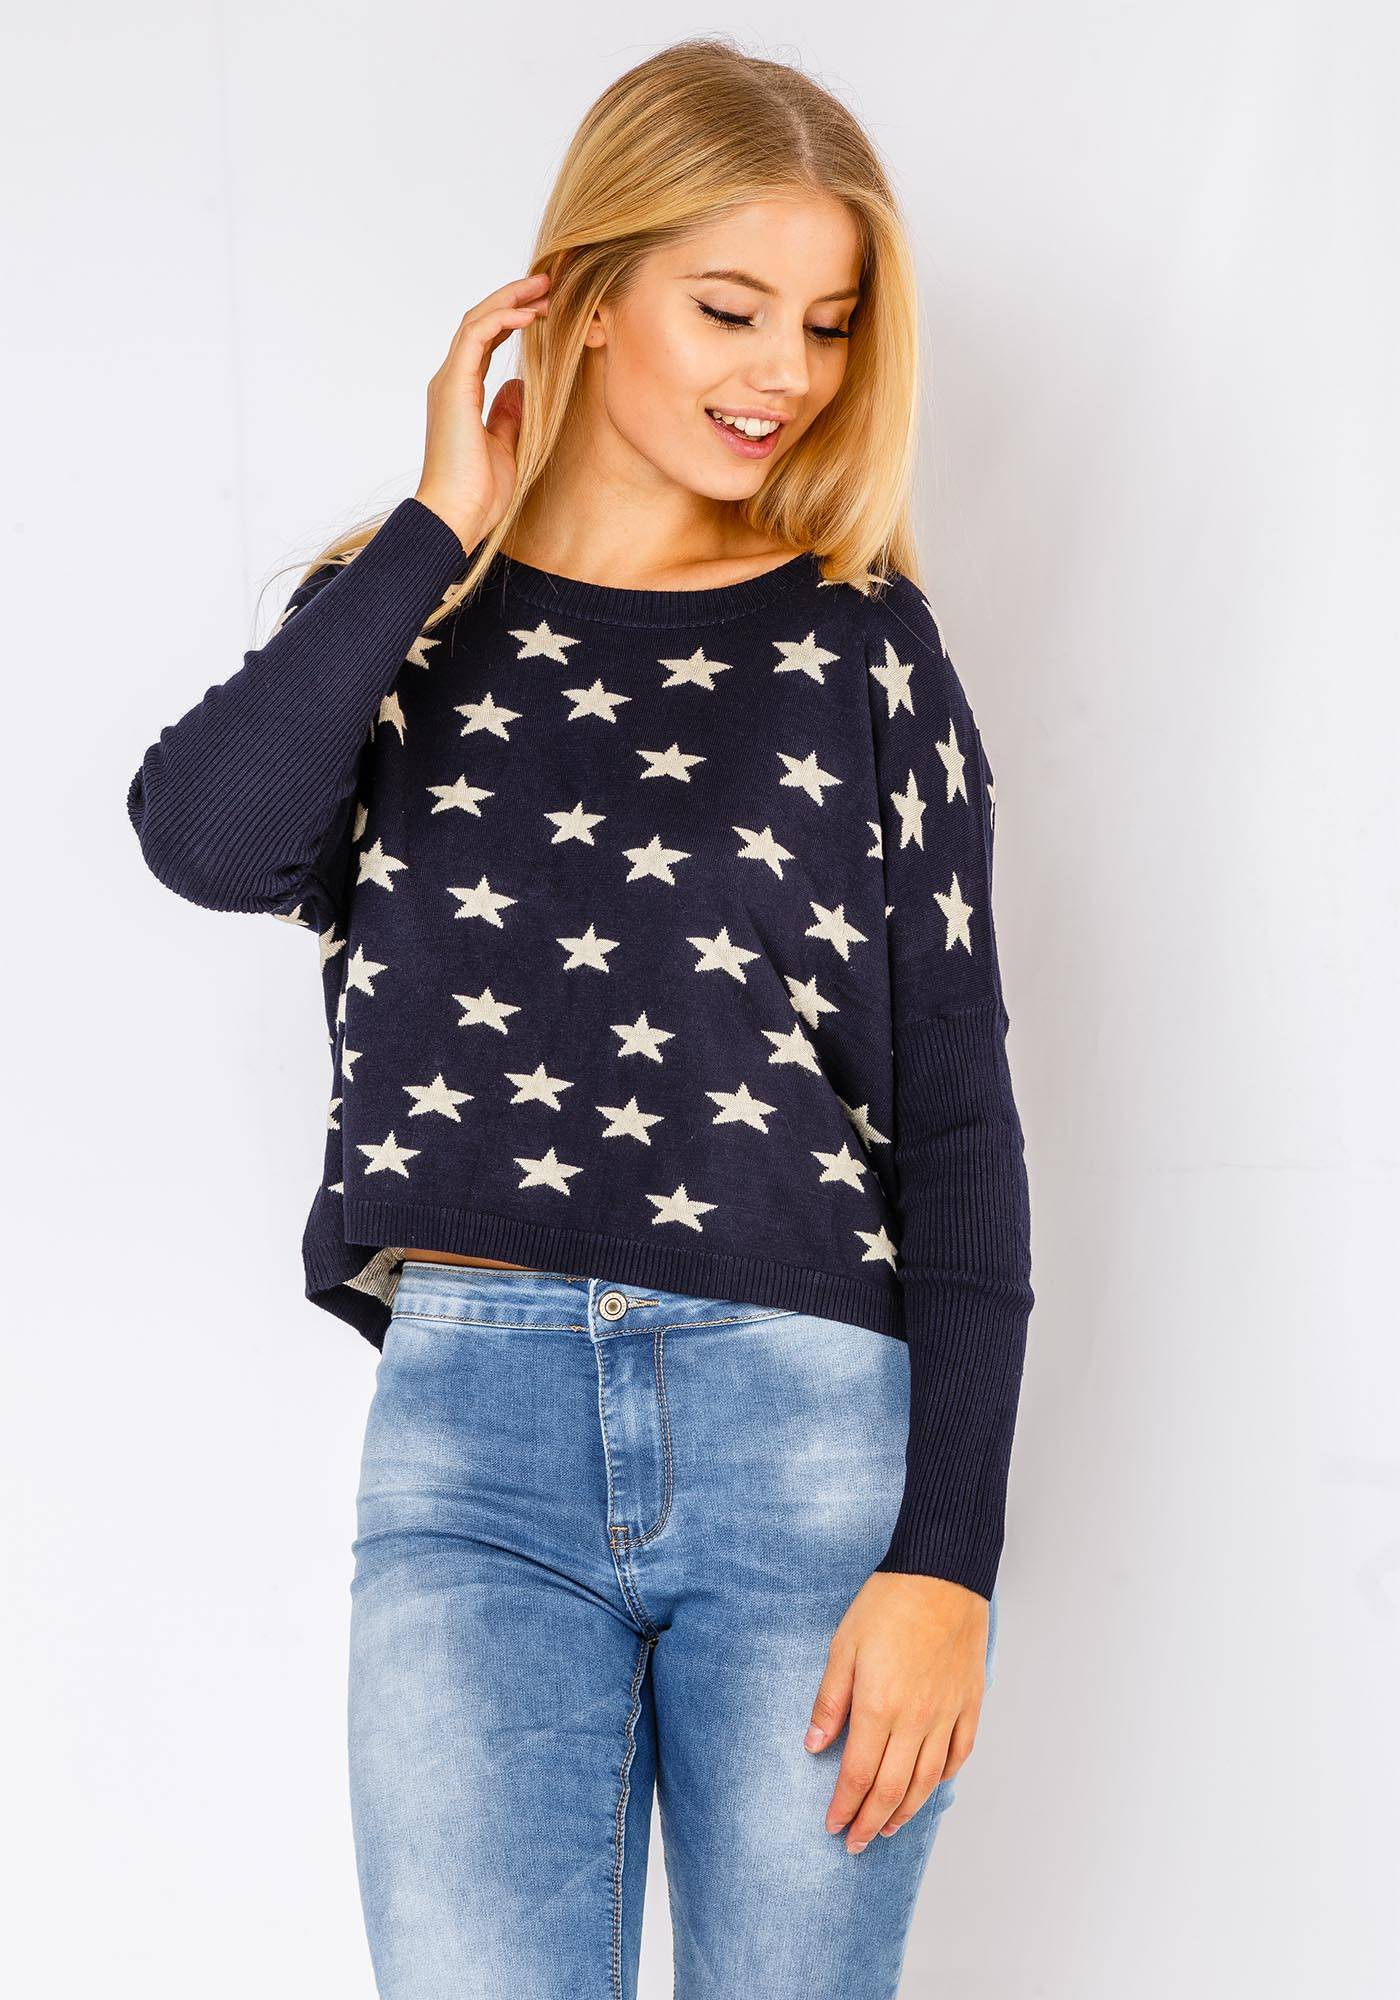 Parta Fortuna Comfy Star Sweater In Navy